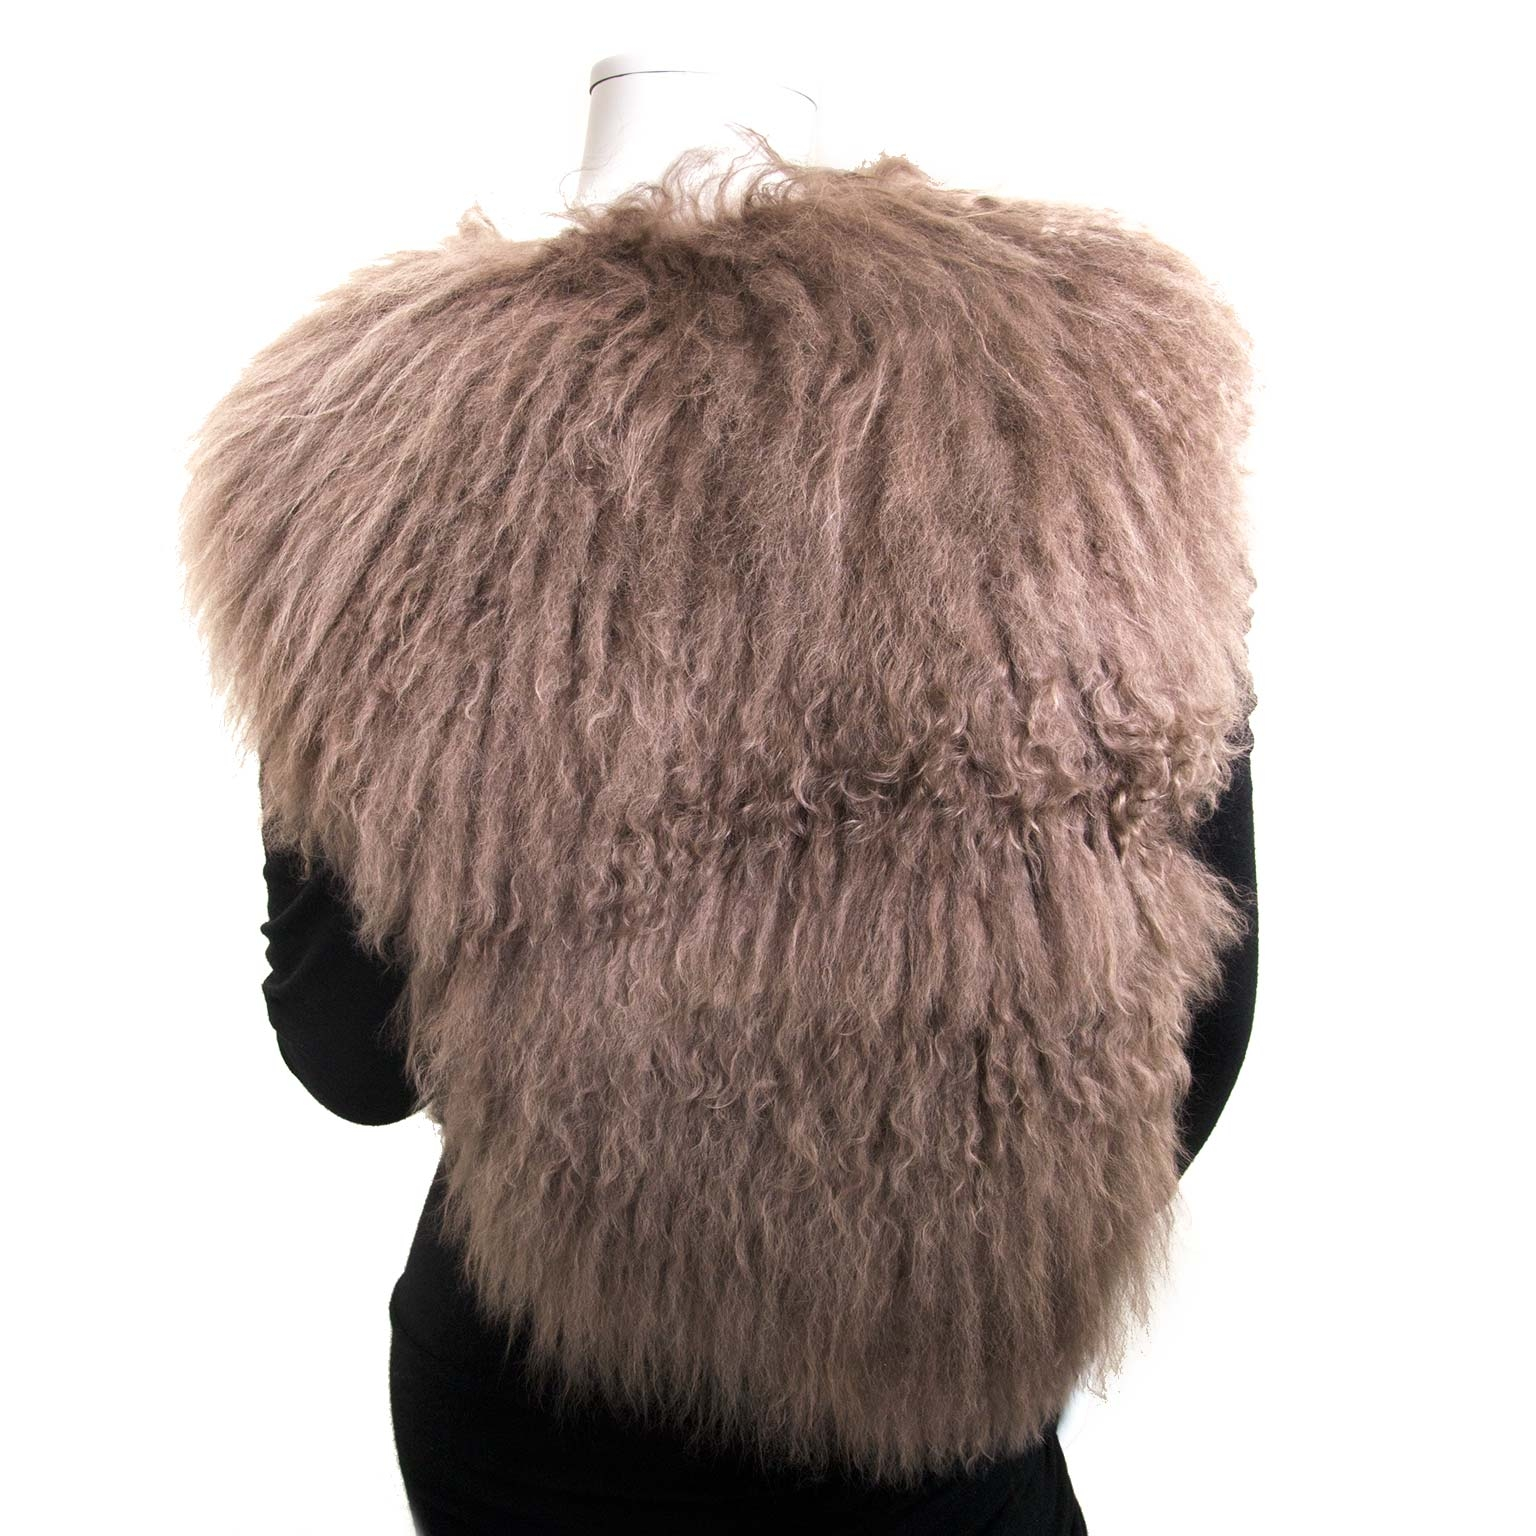 balenciaga mongolian sheep vest now for sale at labellov vintage fashion webshop belgium